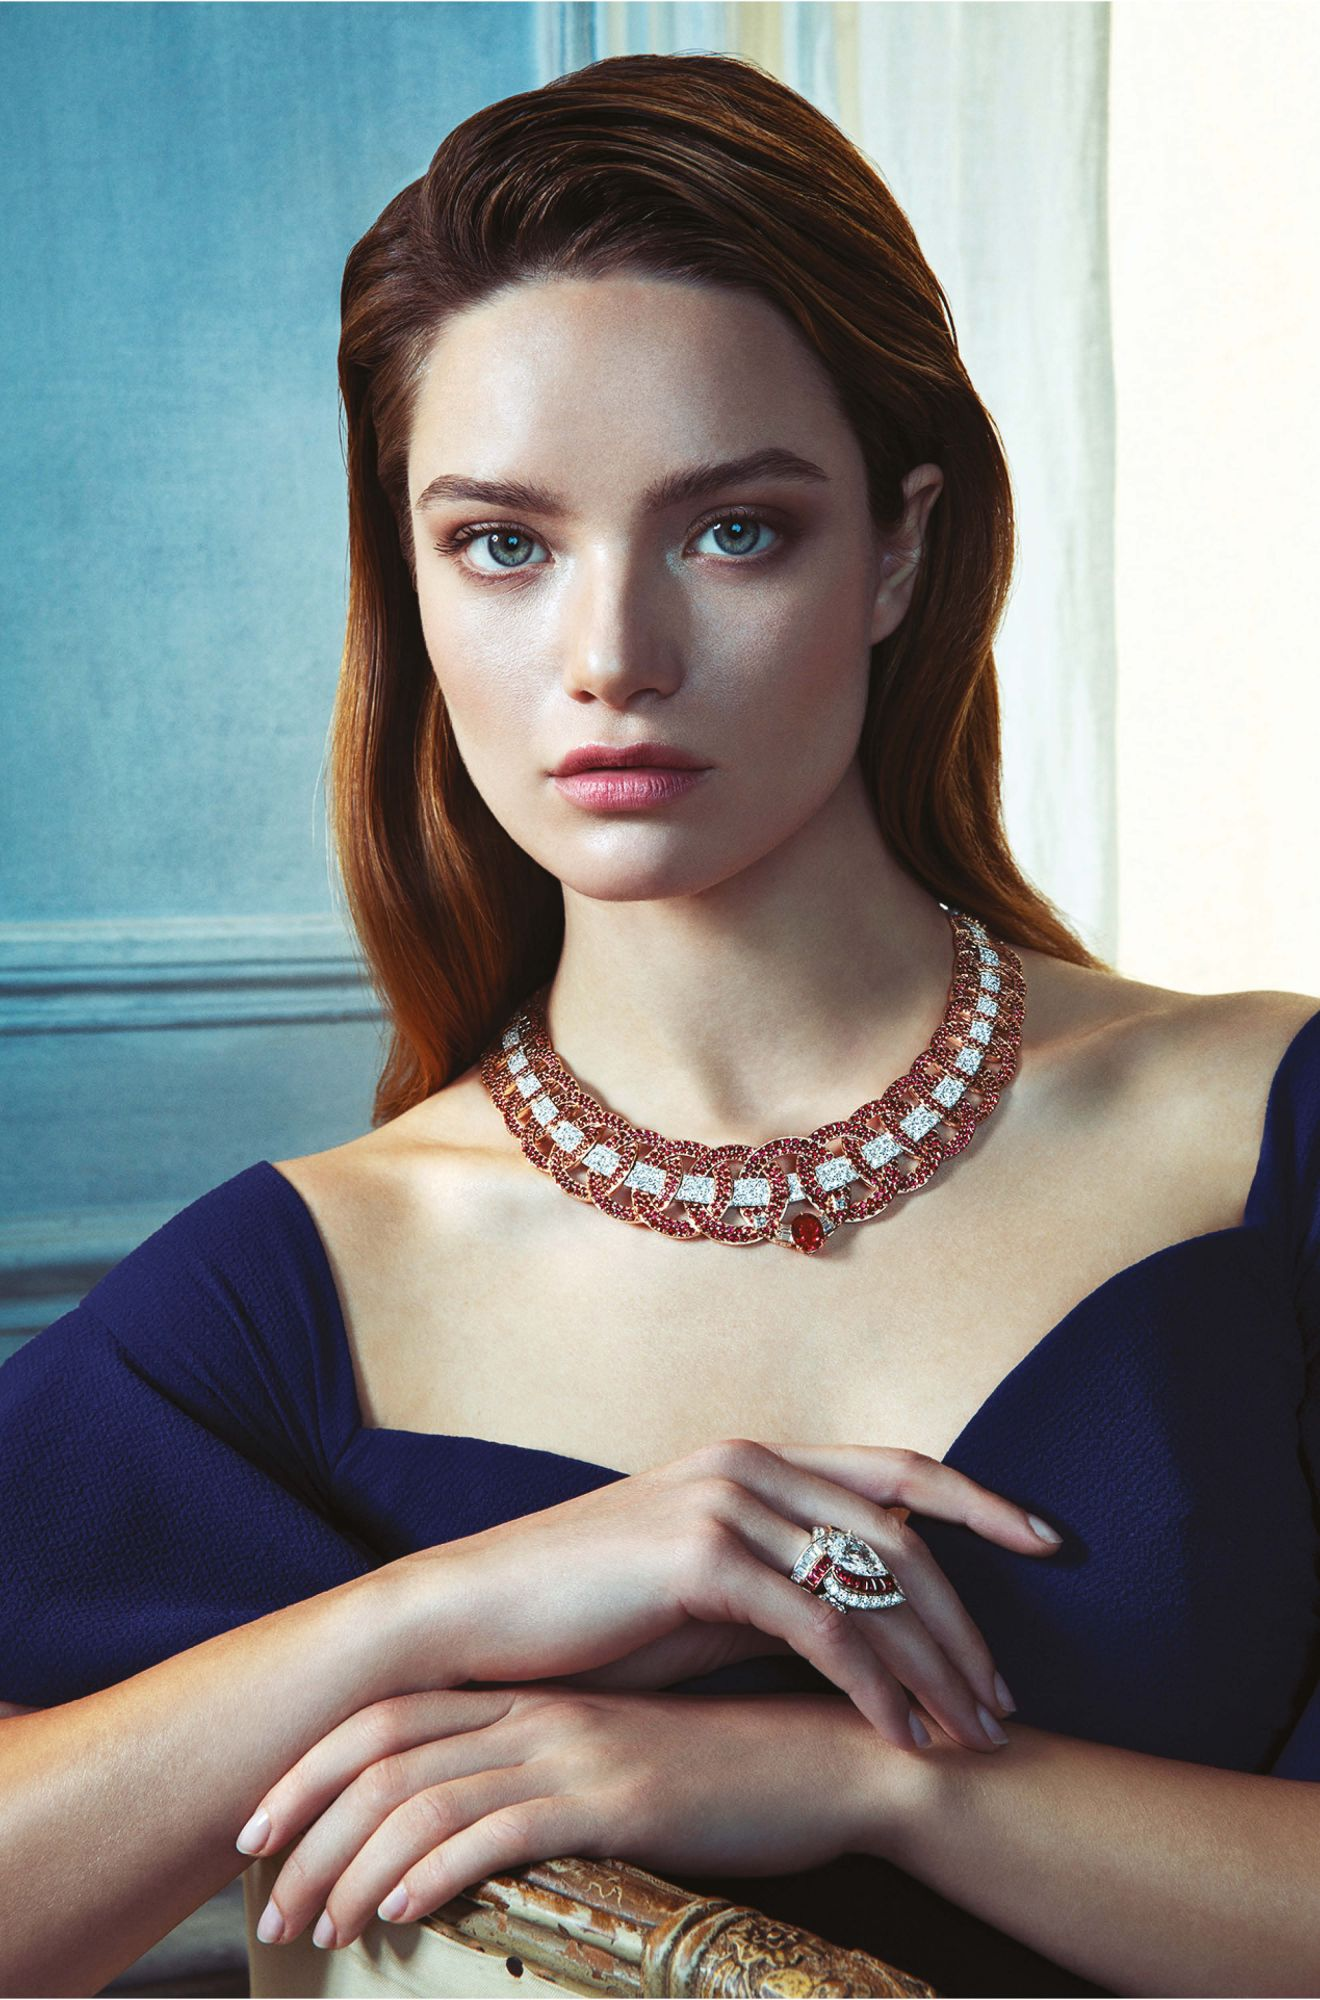 Elsa necklace and Maha ring in white and pink gold set with rubies and diamonds, by Van Cleef & Arpels